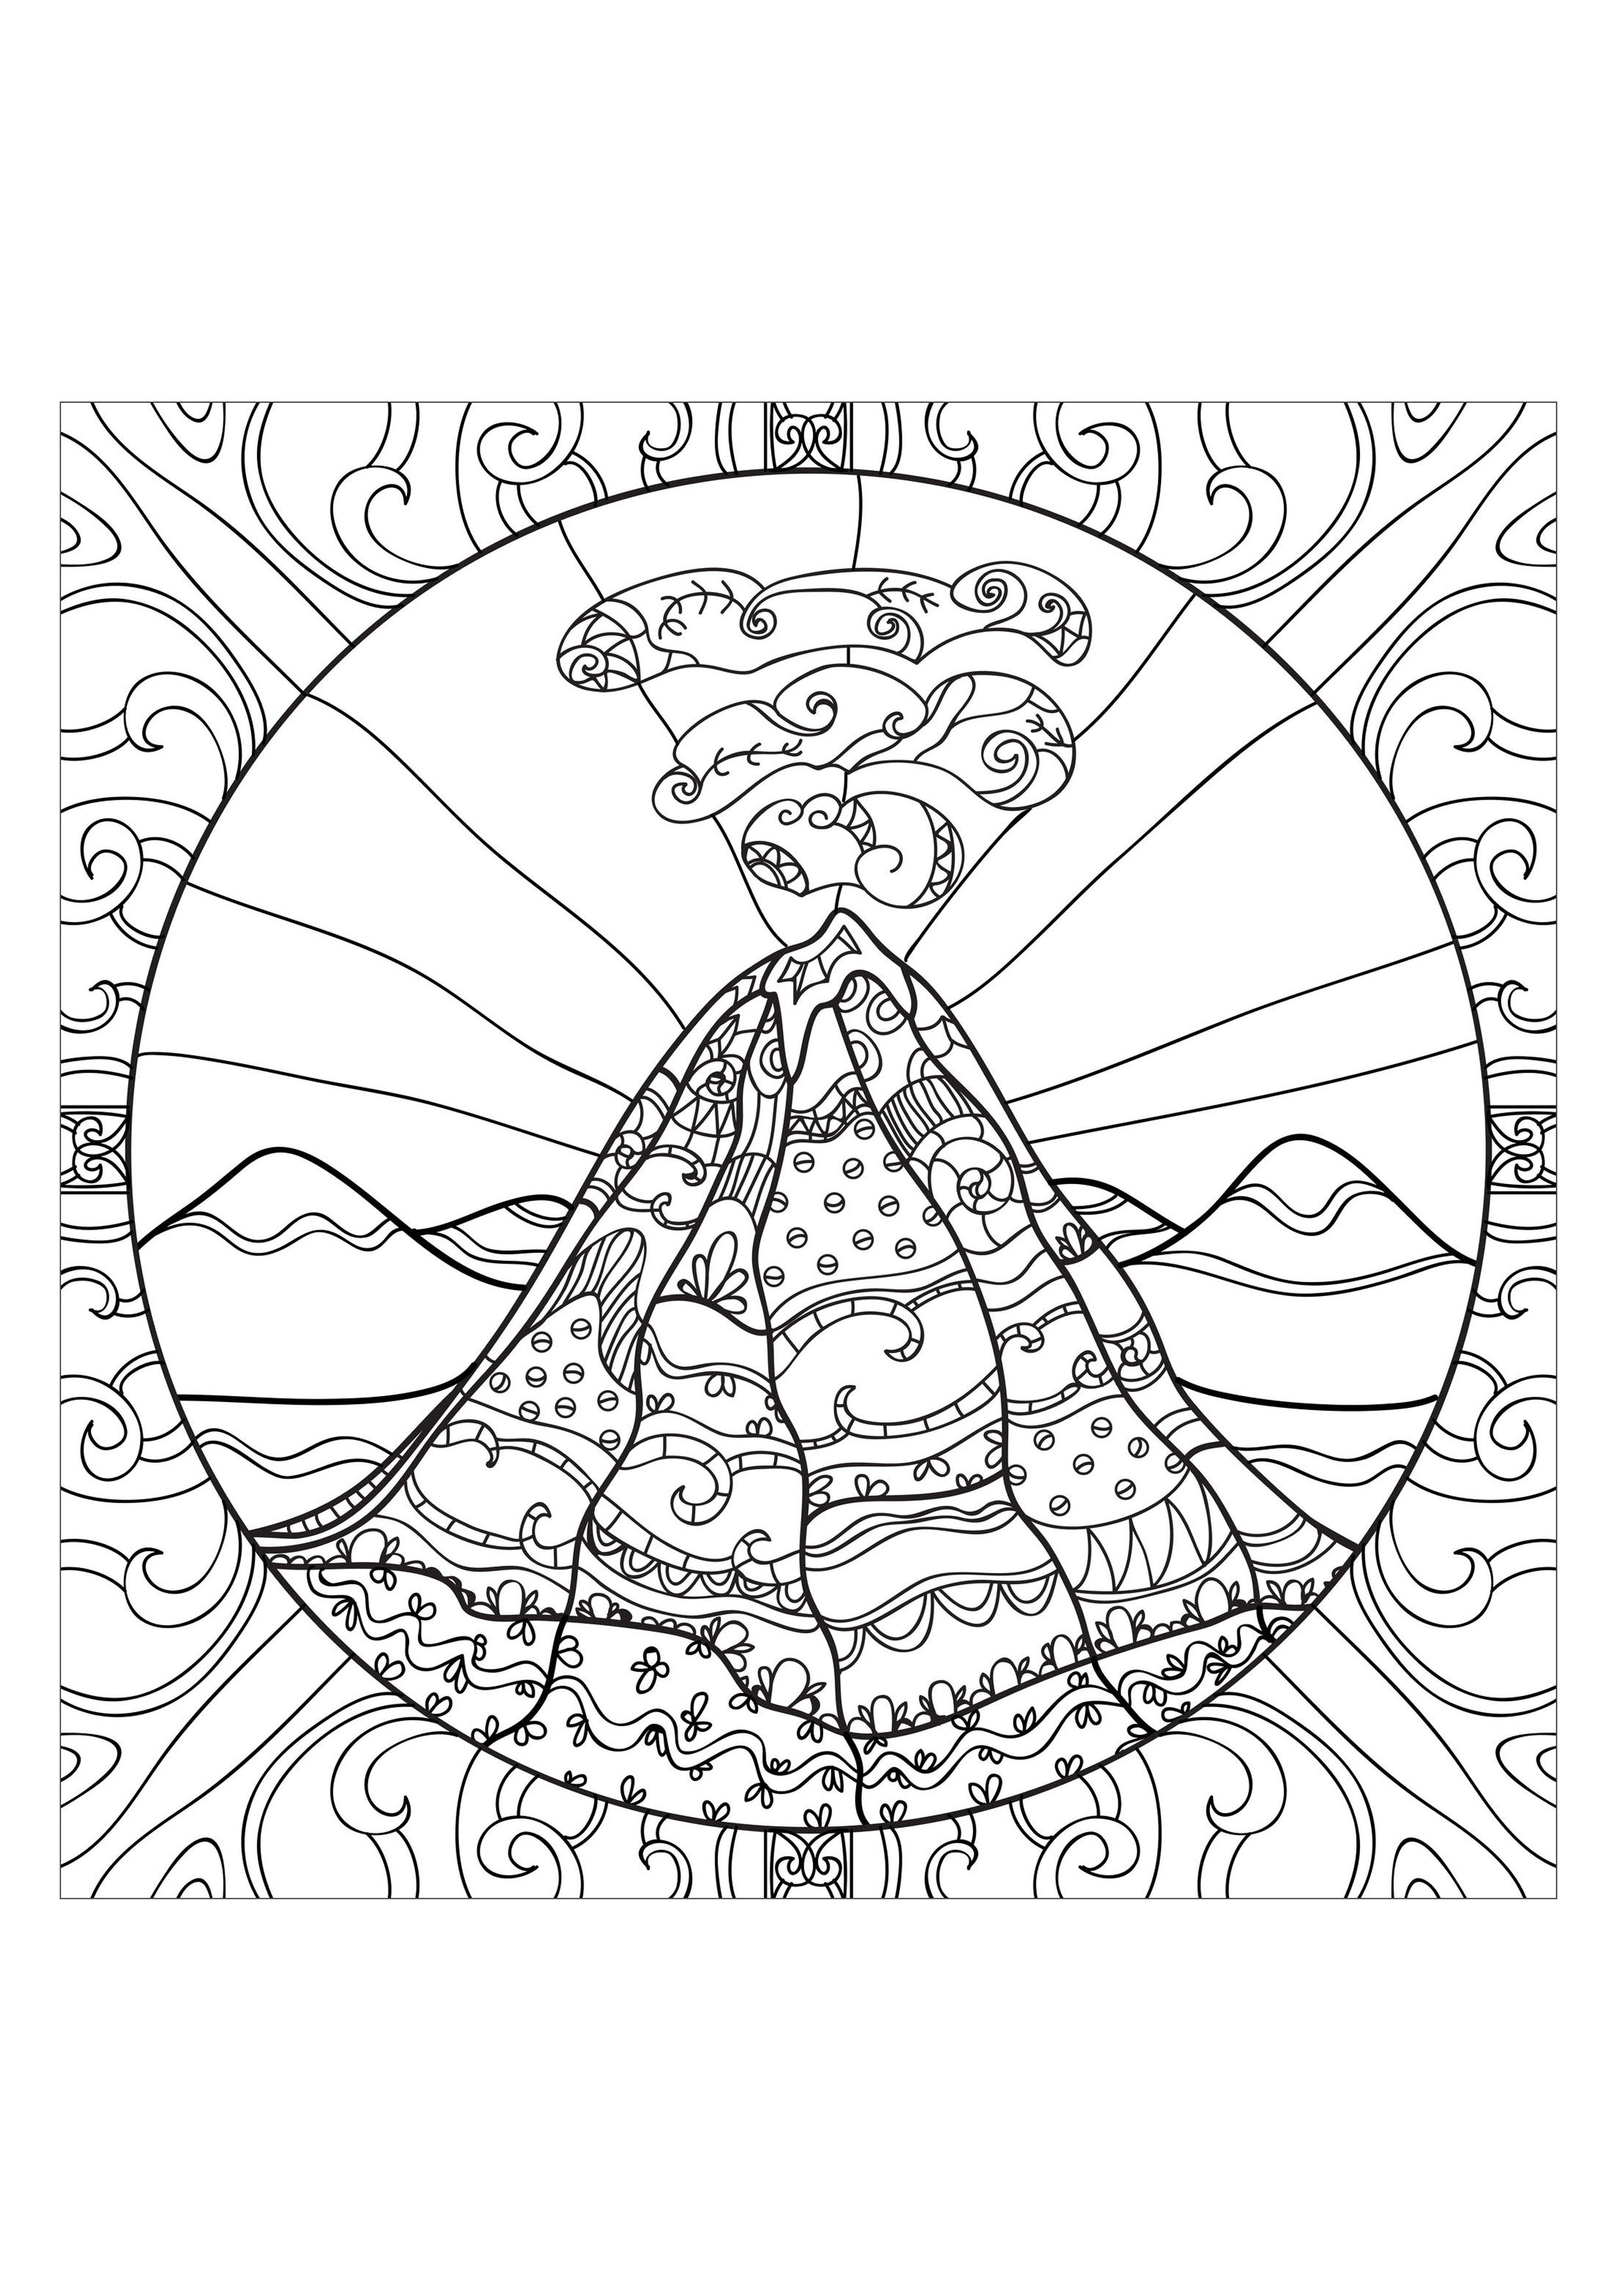 Volcano Coloring Pages for Teens